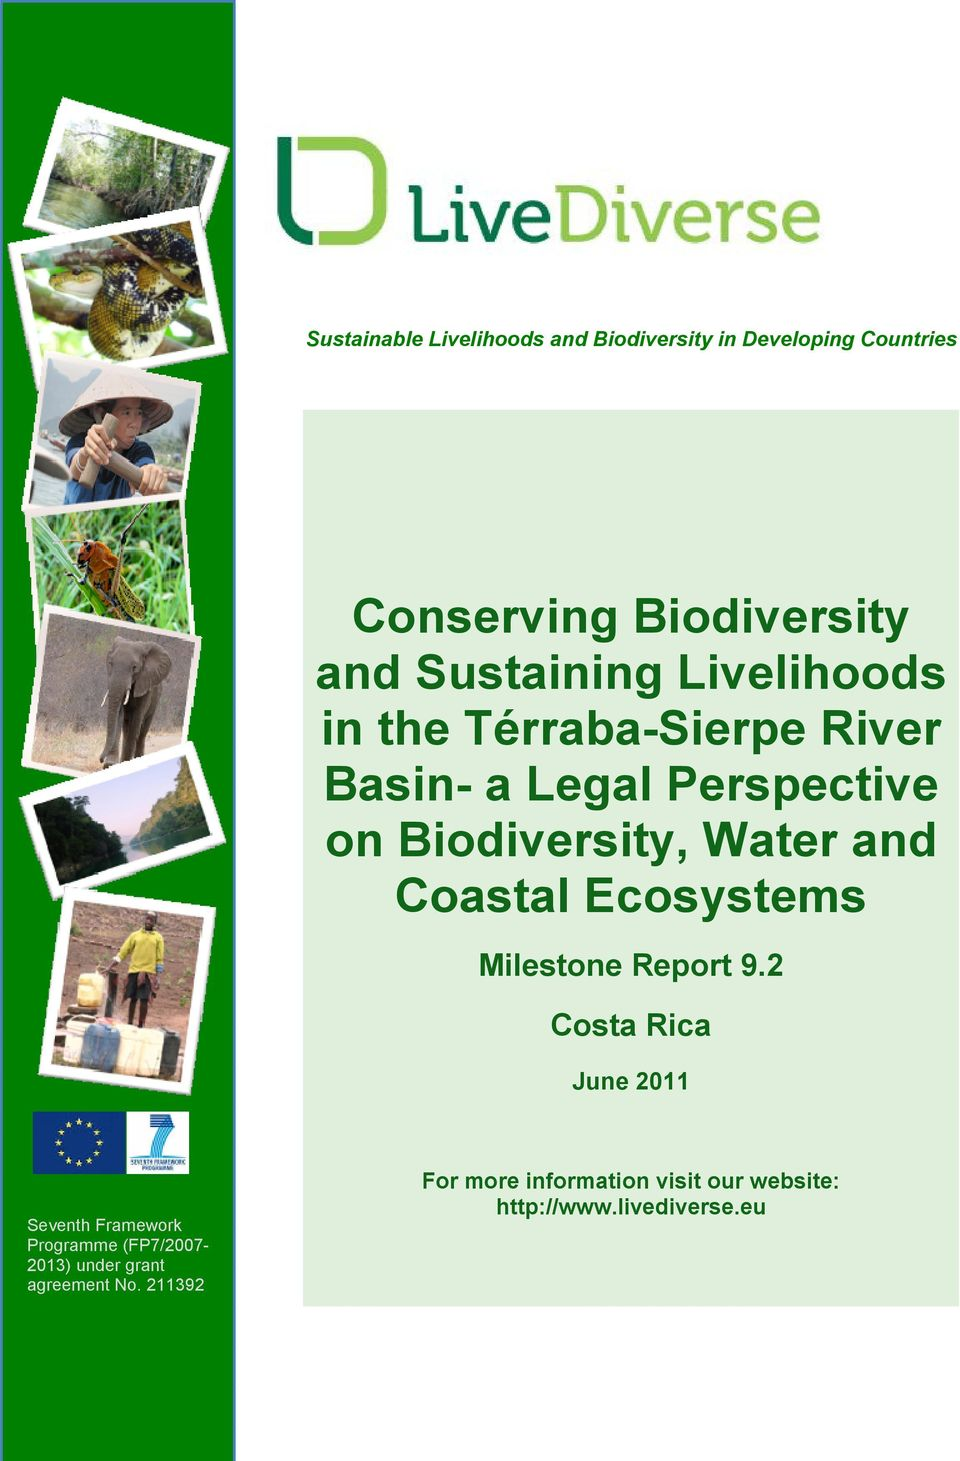 and Coastal Ecosystems Milestone Report 9.